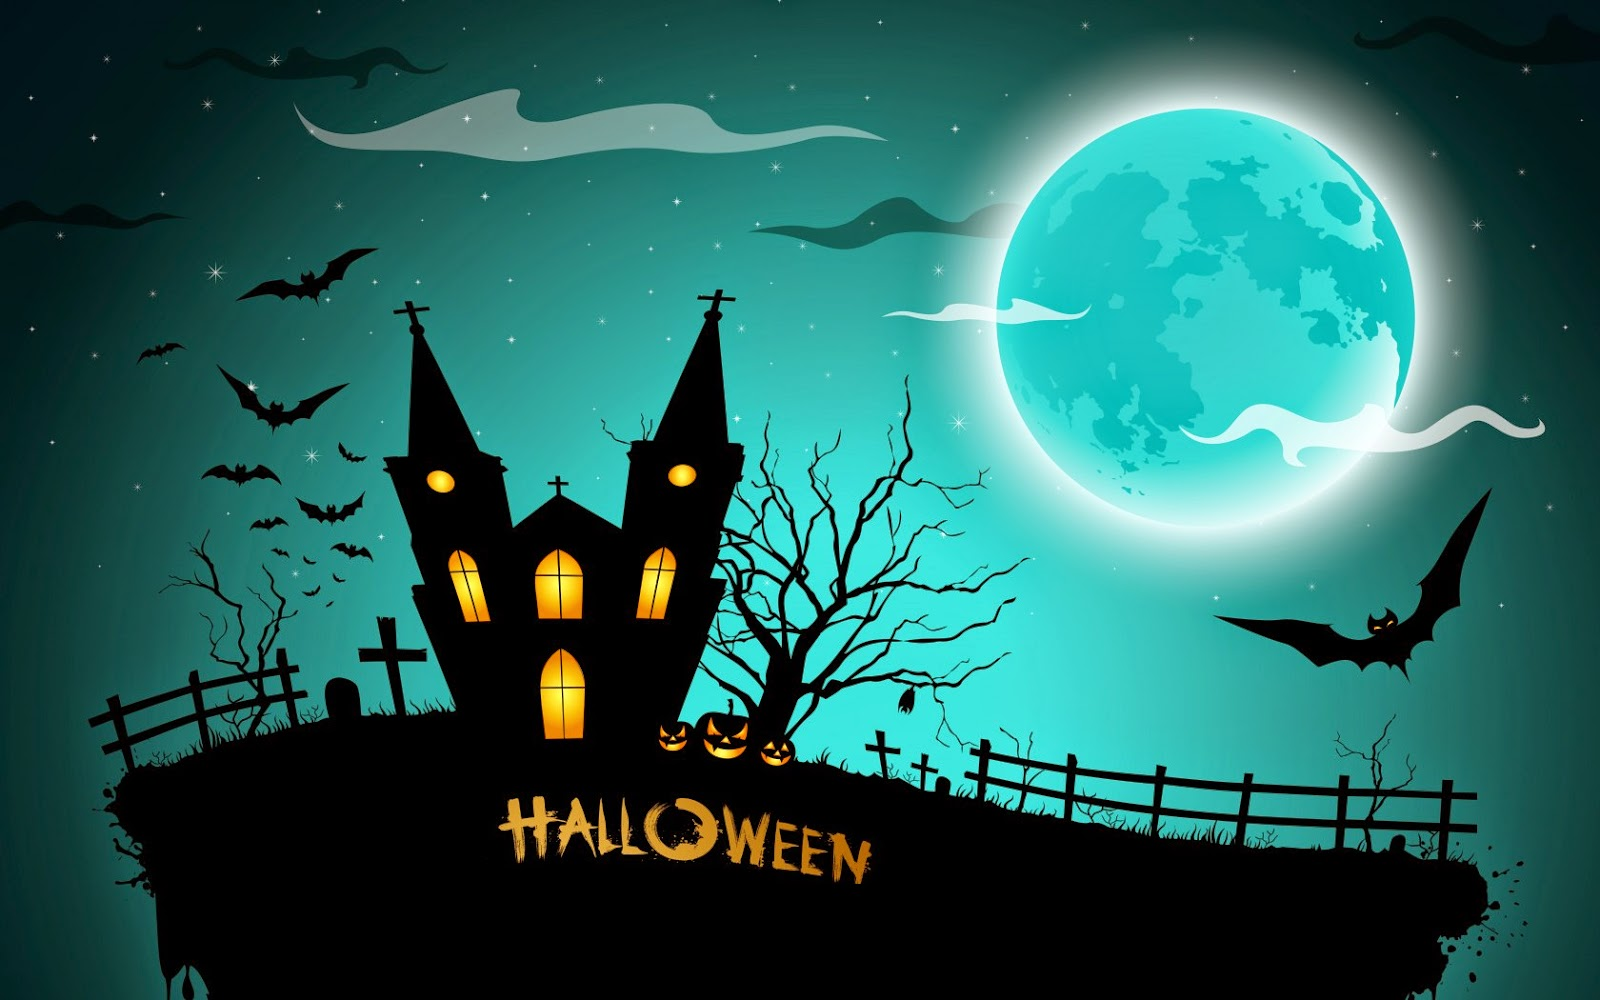 Halloween-theme-black-BG-night-blue-wallpapers-for-sharing-1680x1050.jpg